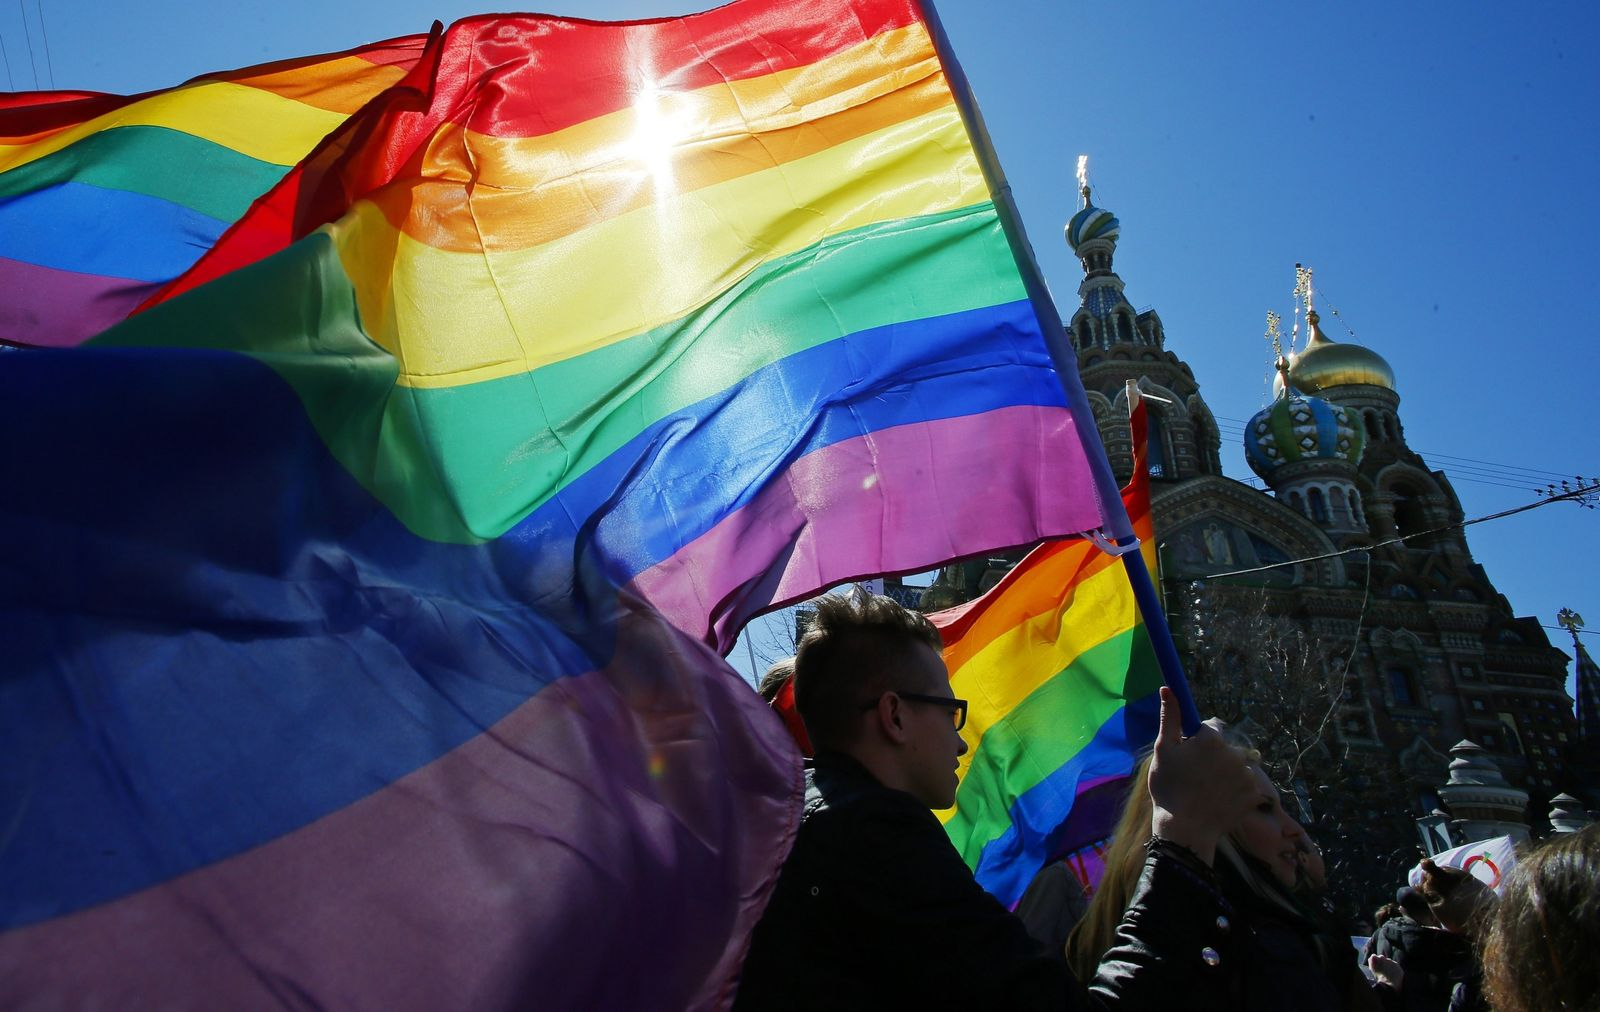 Russia Gay Clampdown